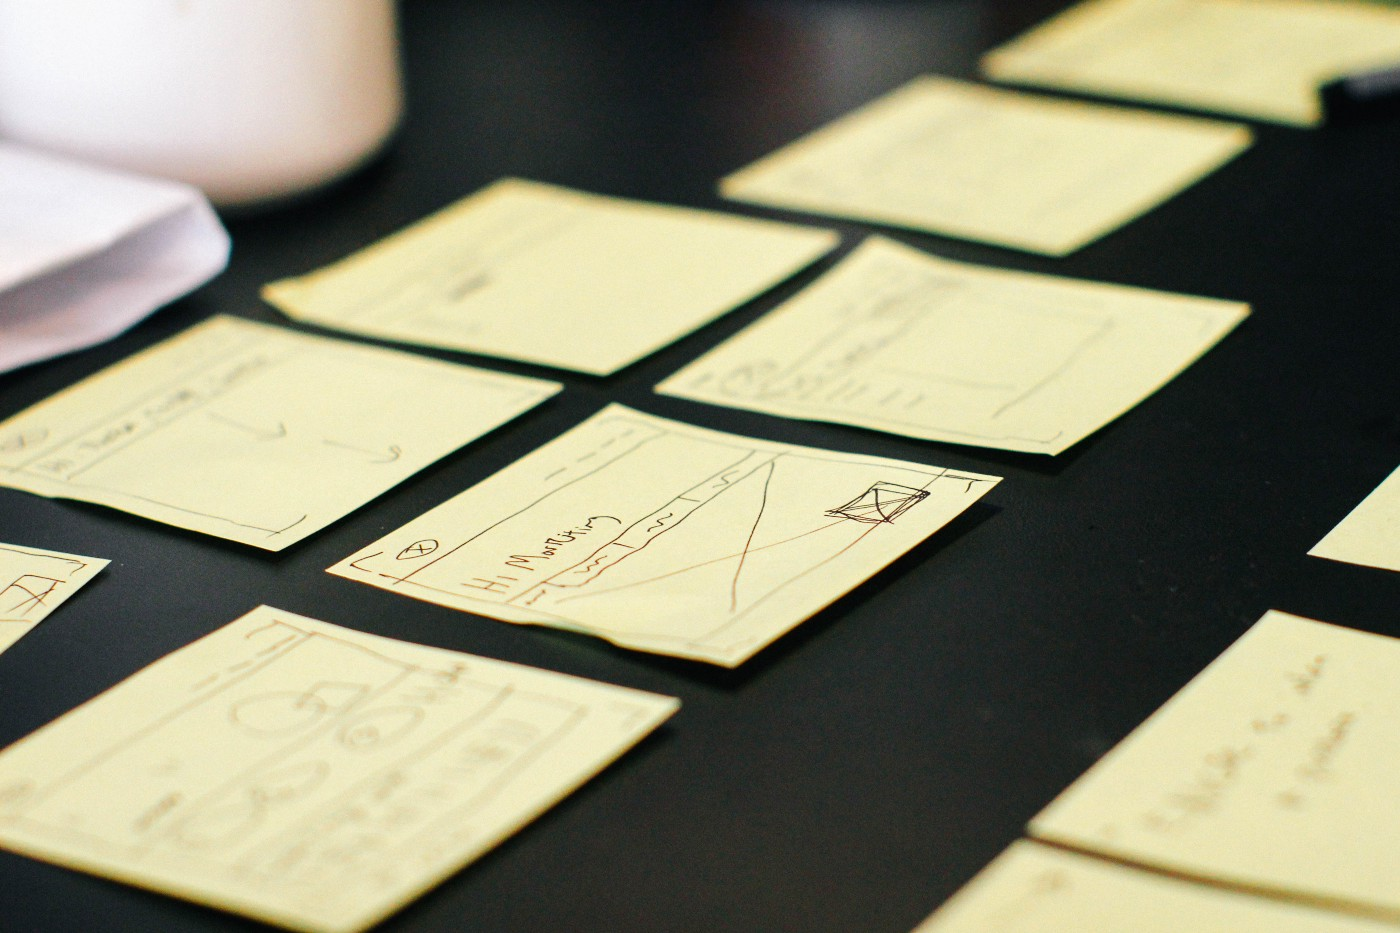 Yellow sticky notes on black desk—a common sight at startups for brainstorming ideas, organizing thoughts and tracking task